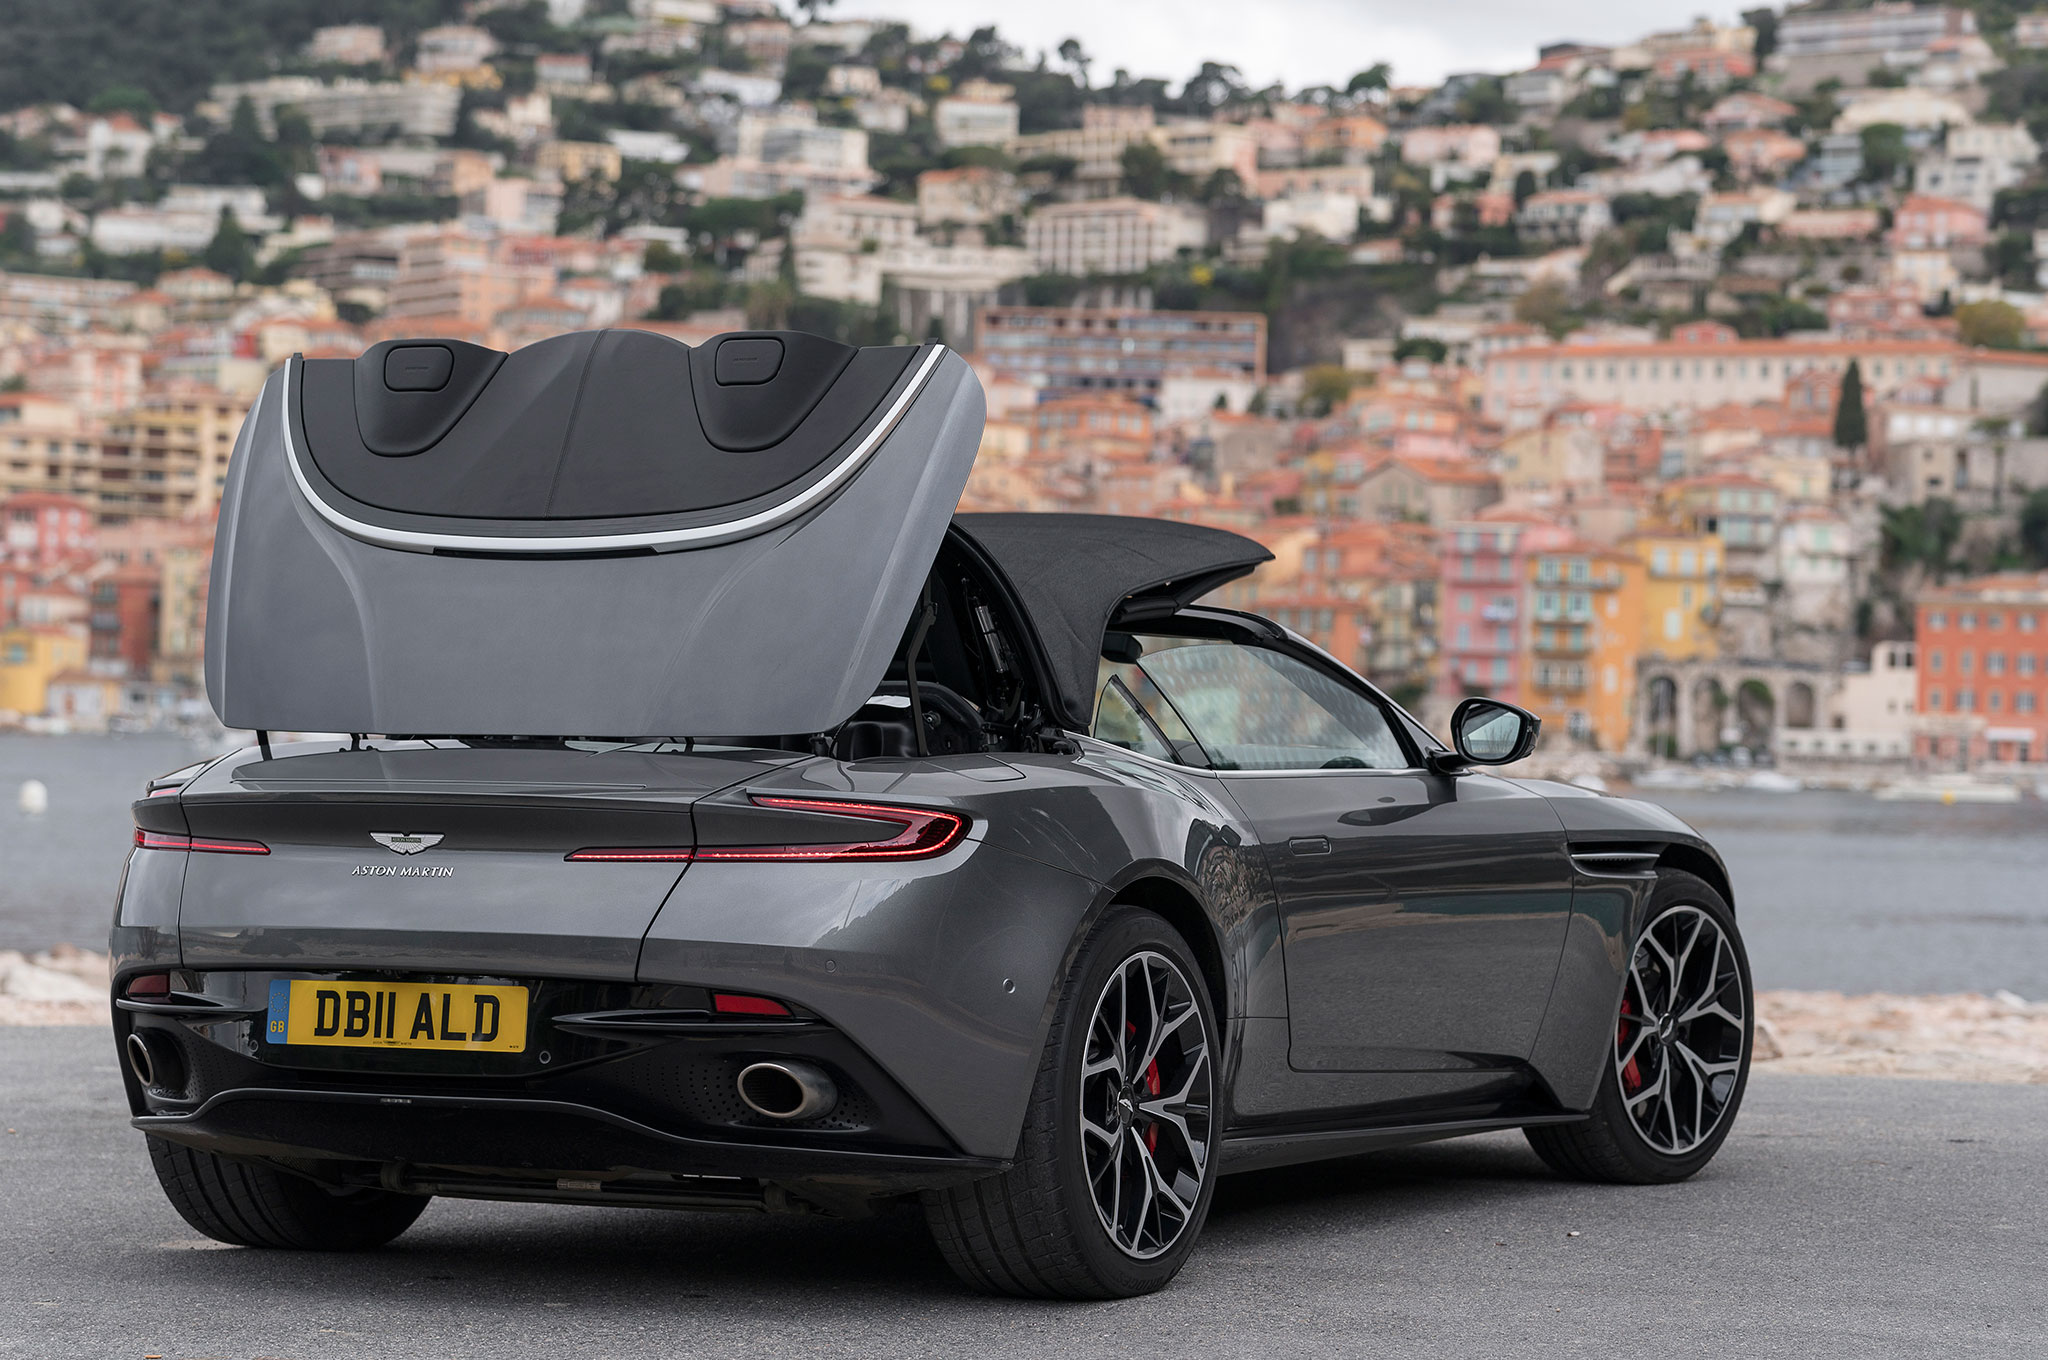 2019 aston martin db11 volante first drive review automobile magazine. Black Bedroom Furniture Sets. Home Design Ideas